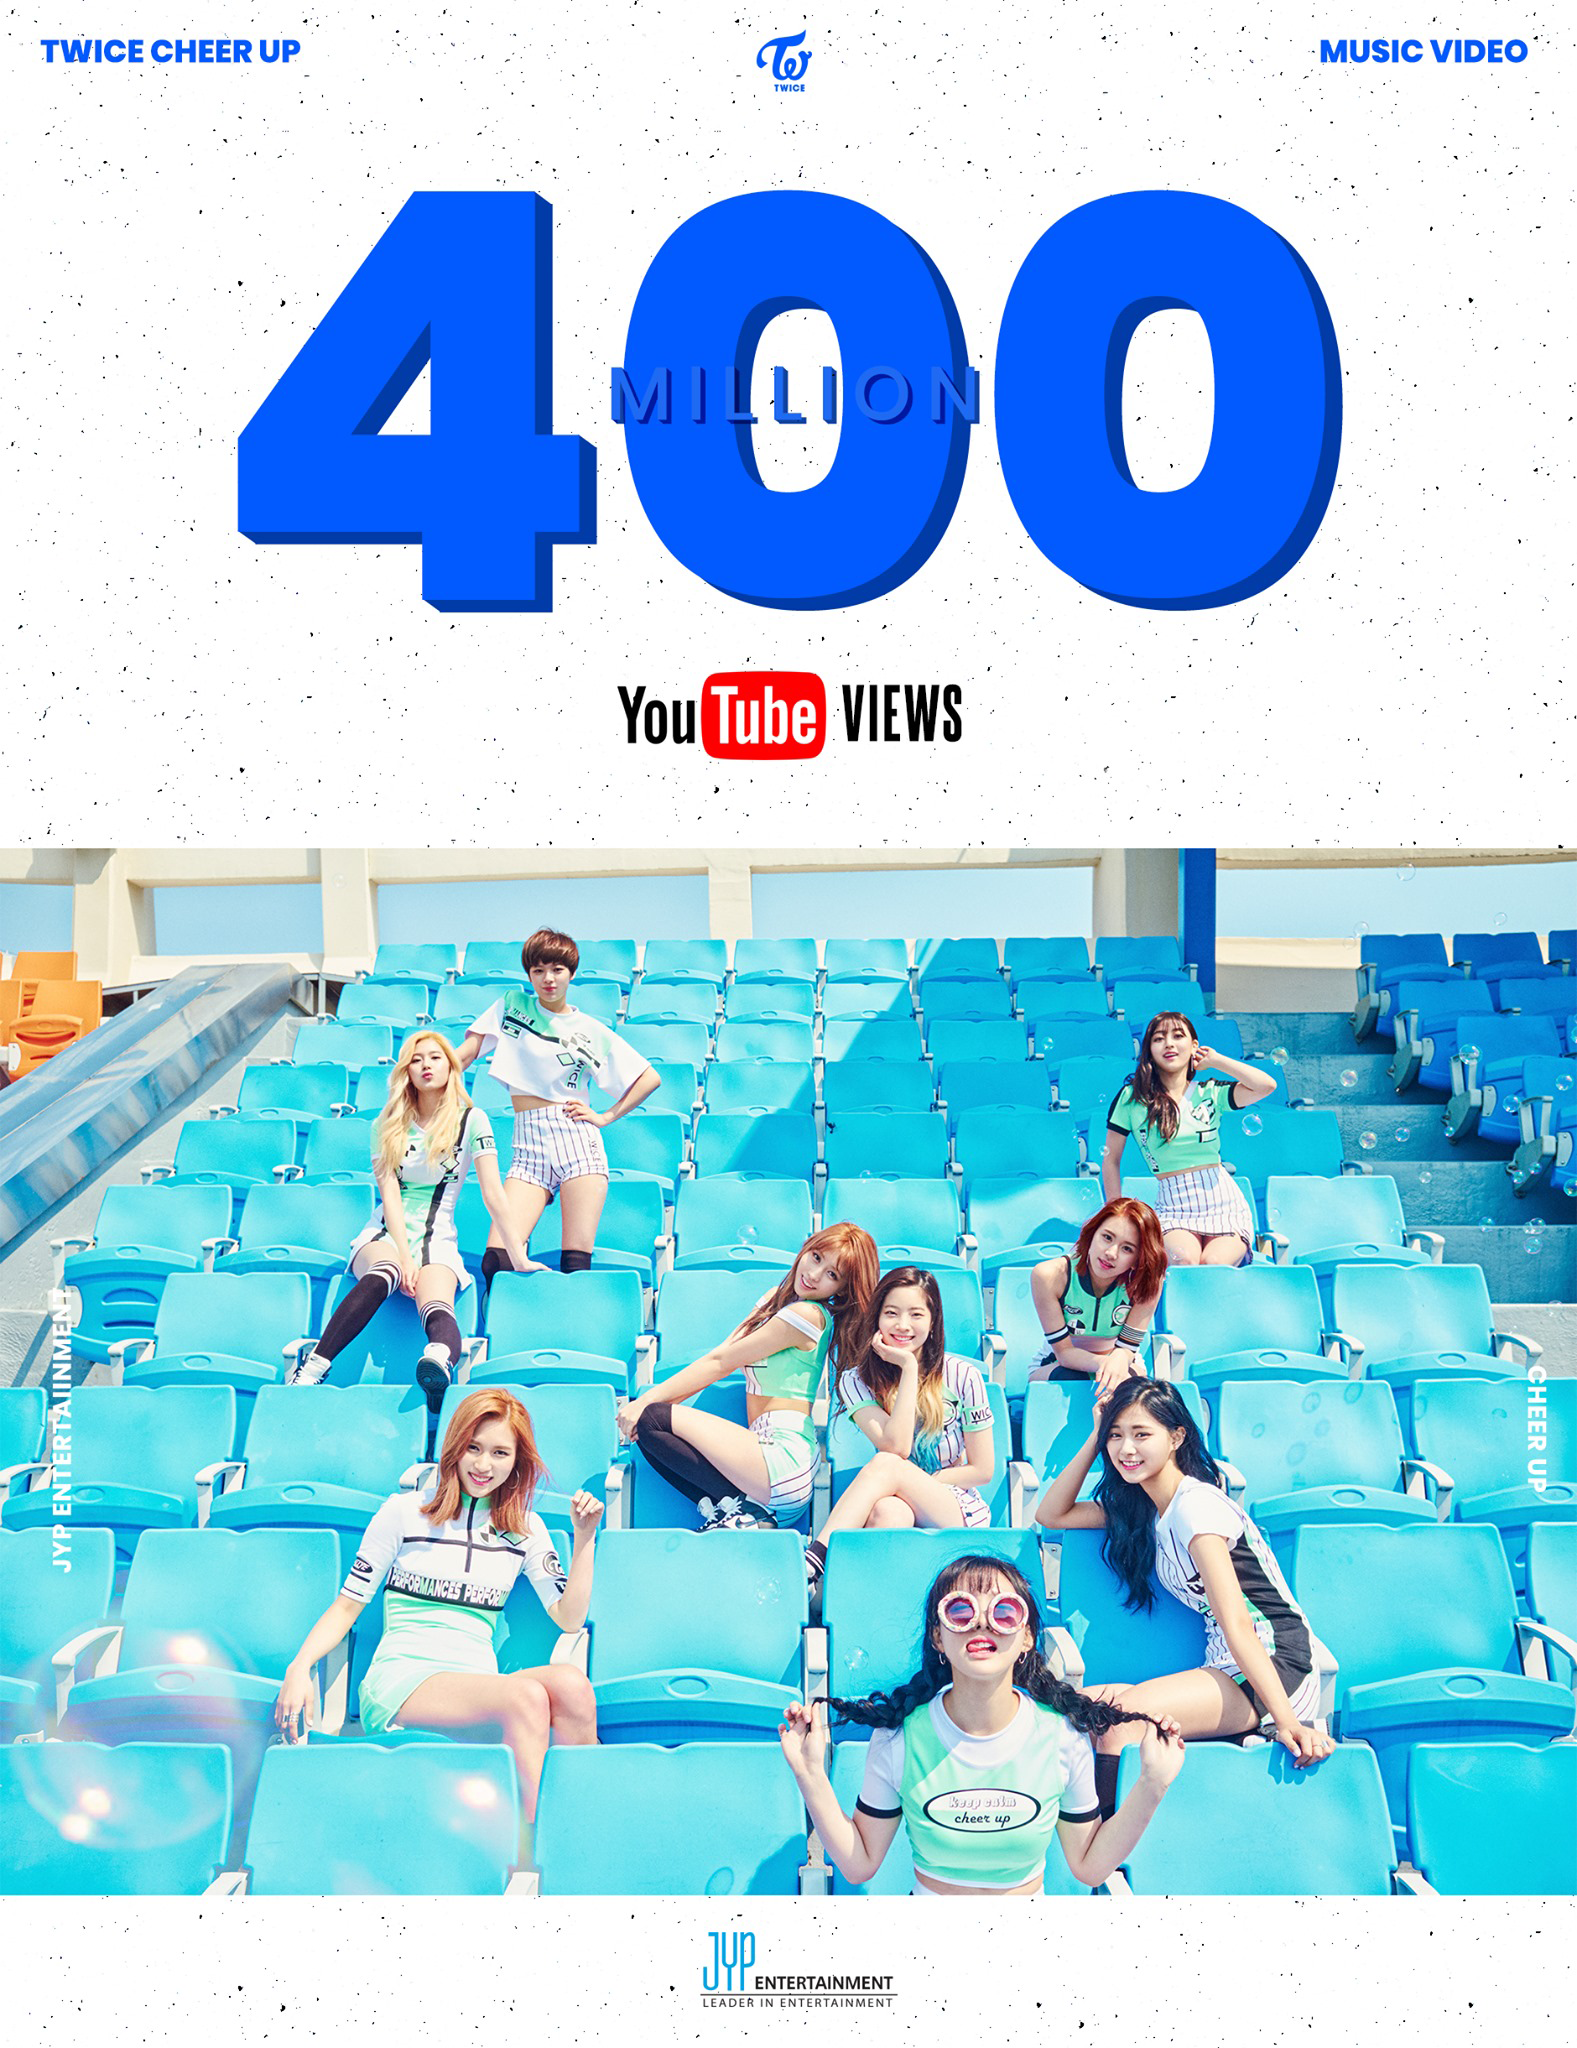 TWICE Cheer Up 400M views photo.png